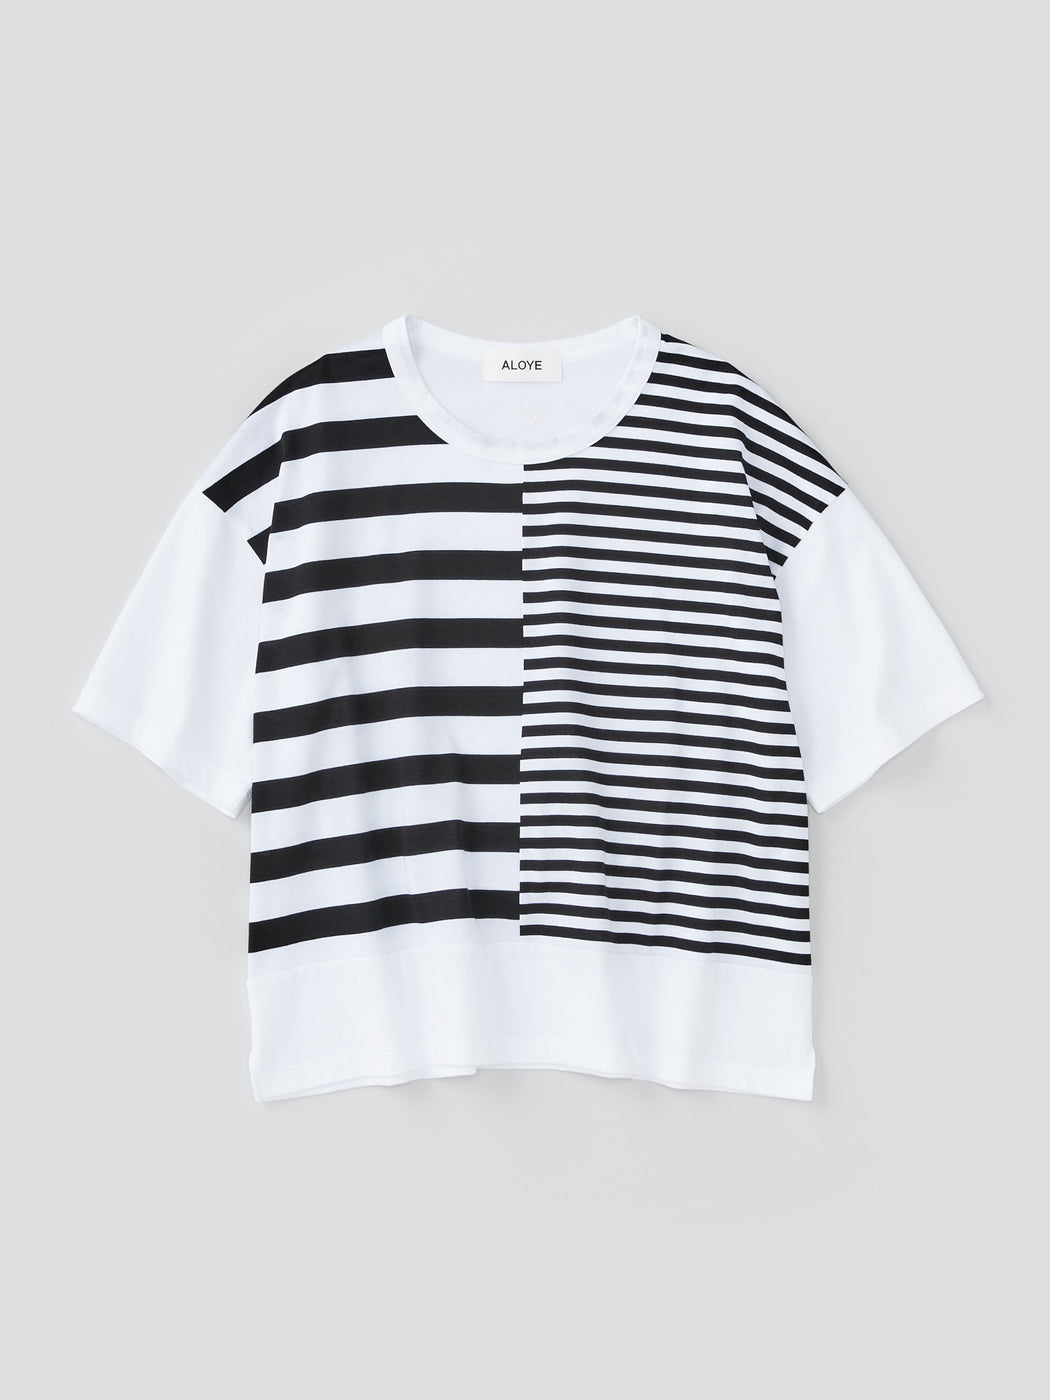 ALOYE Dots & Stripes Women's Short Sleeve Wide T-shirt Split Stripes